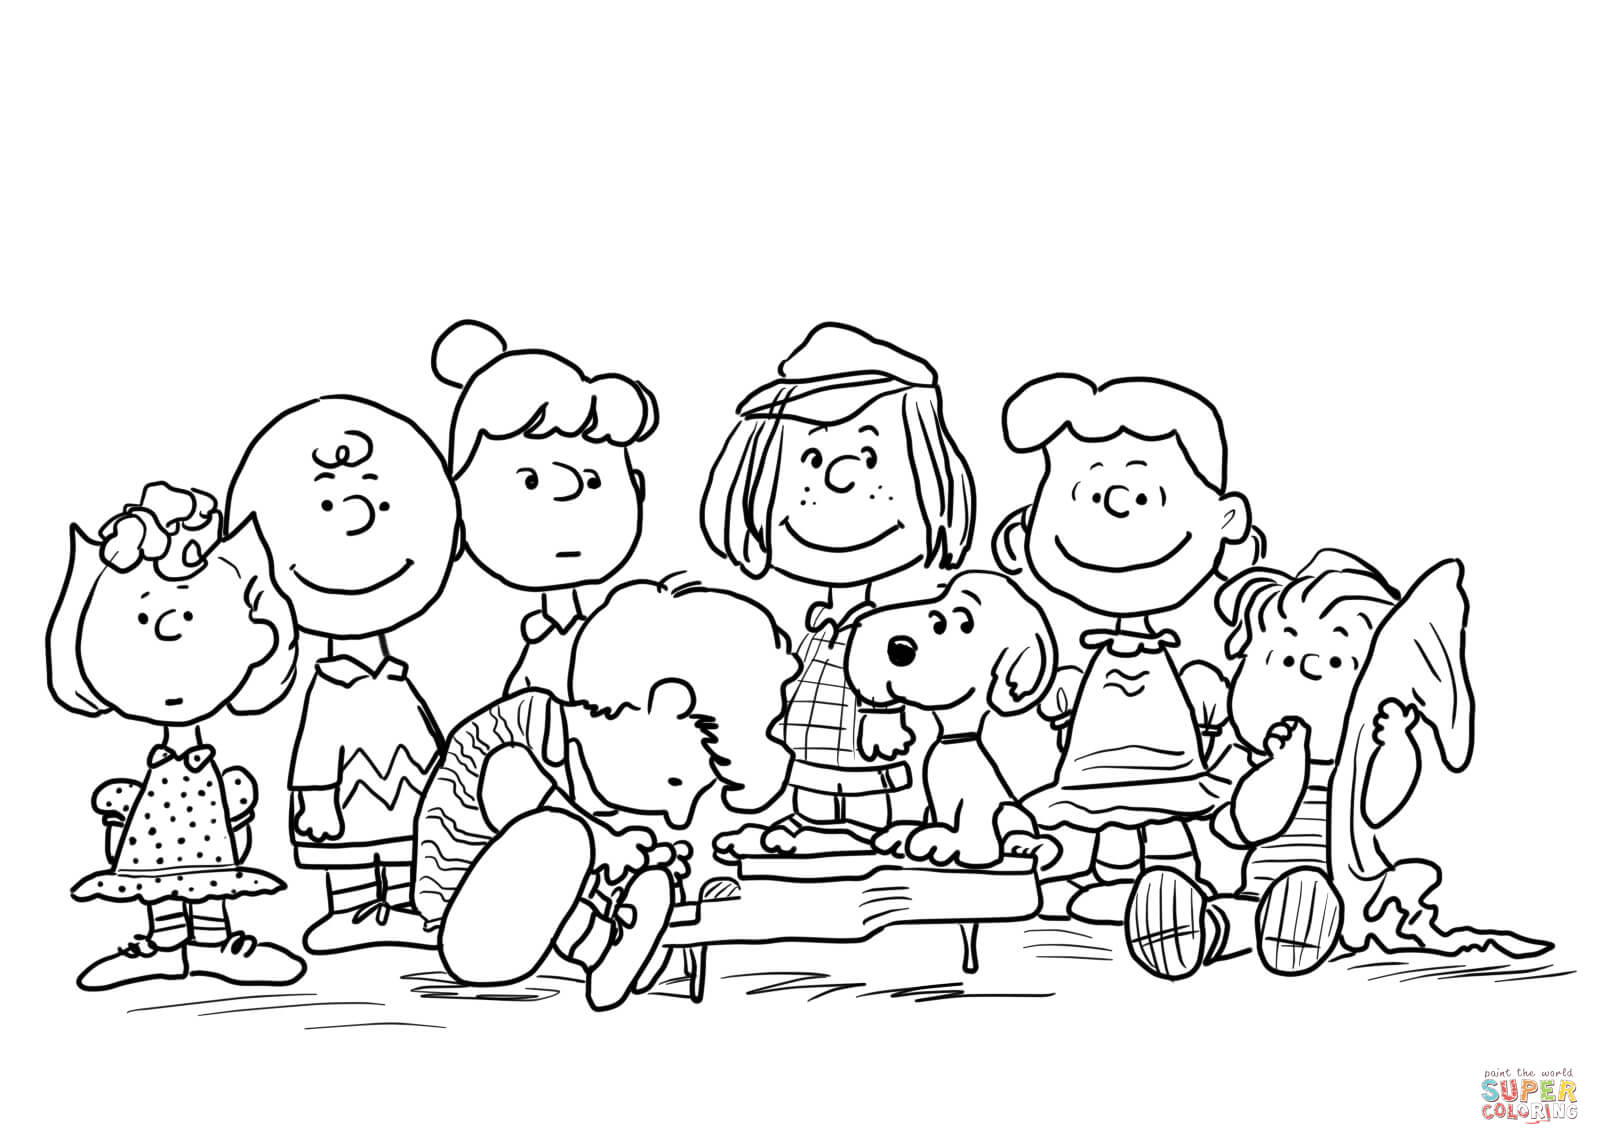 10 Pics of Peanuts Coloring Pages - Snoopy Christmas Coloring ...